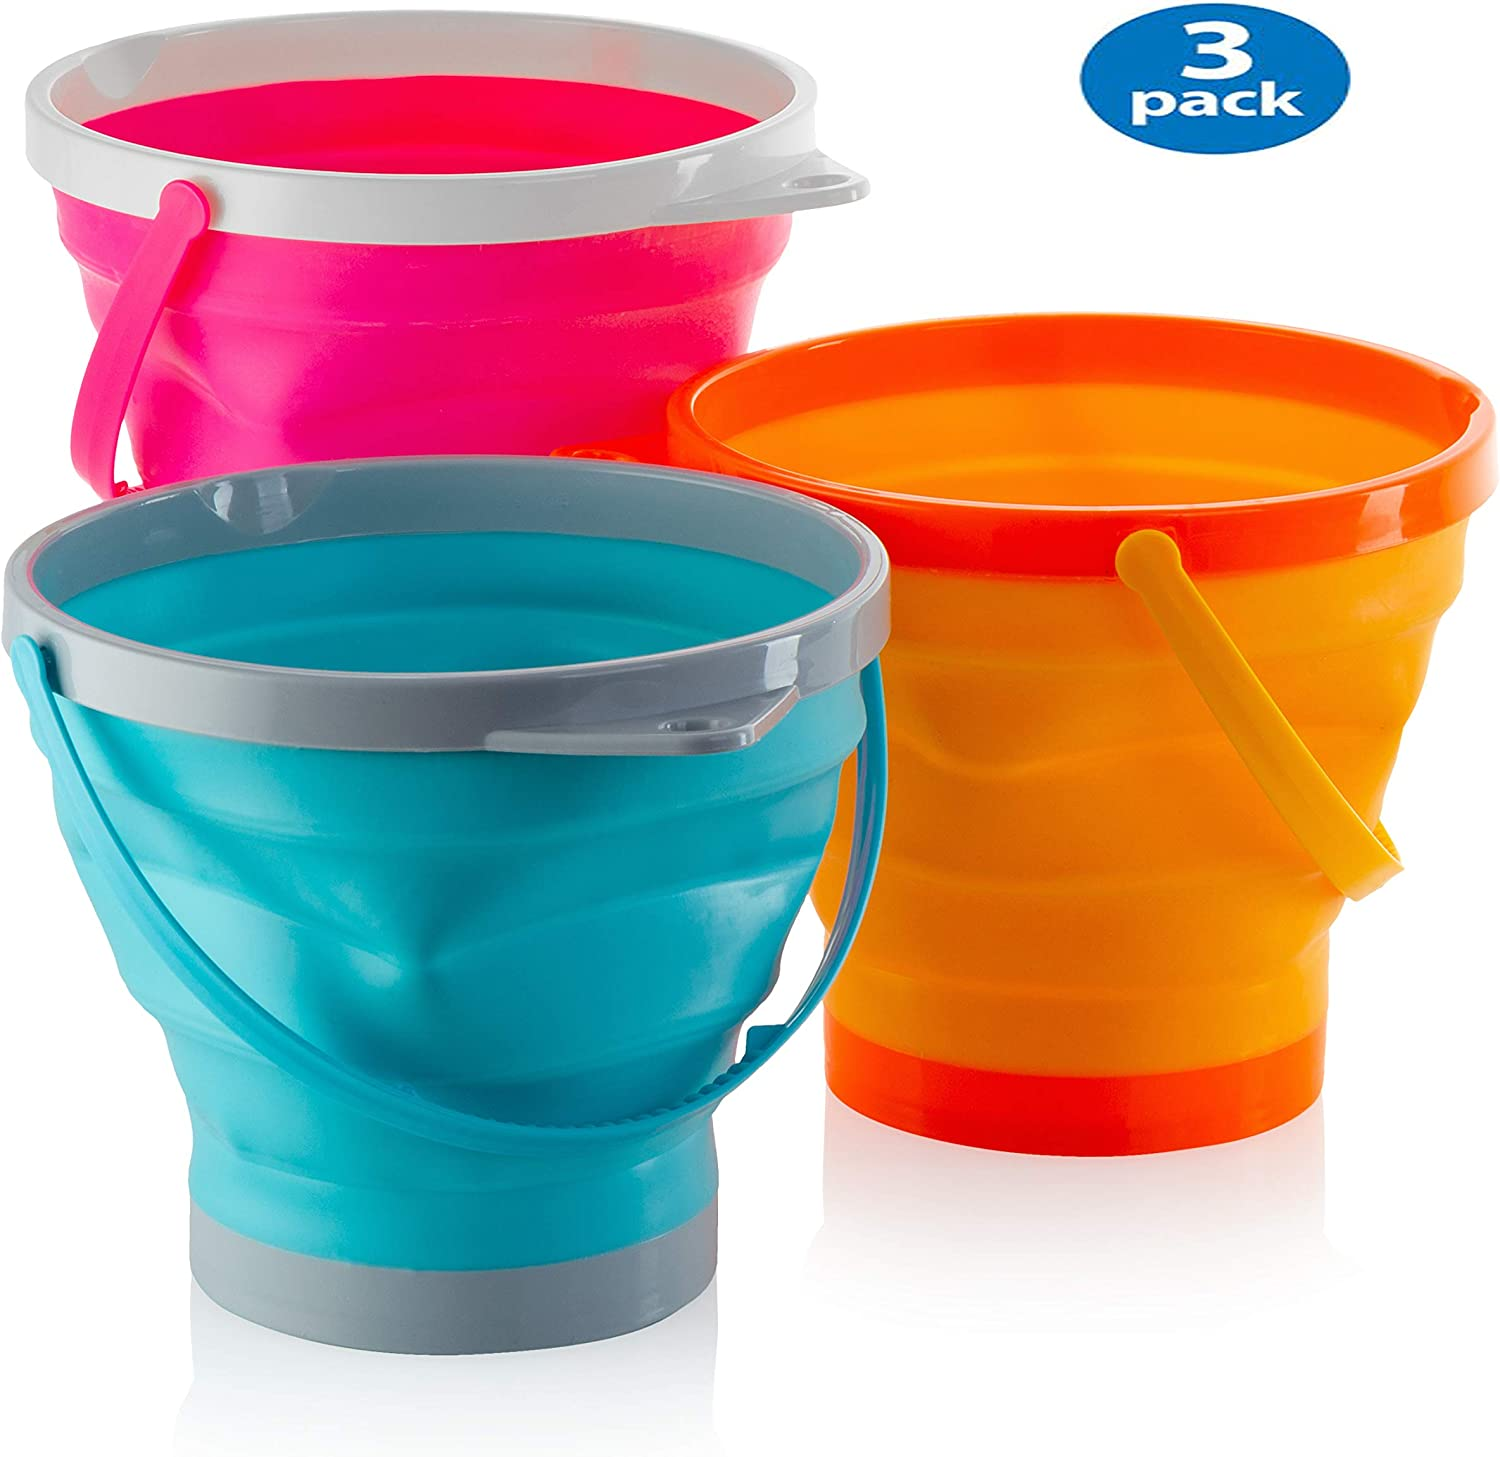 Large Foldable Pail Bucket Collapsible Buckets Multi Purpose for Beach, Camping Gear Water and Food Jug, Dog Bowls, Cats, Dogs and Puppys, Camping and Fishing Tub (1.5 Gallons)